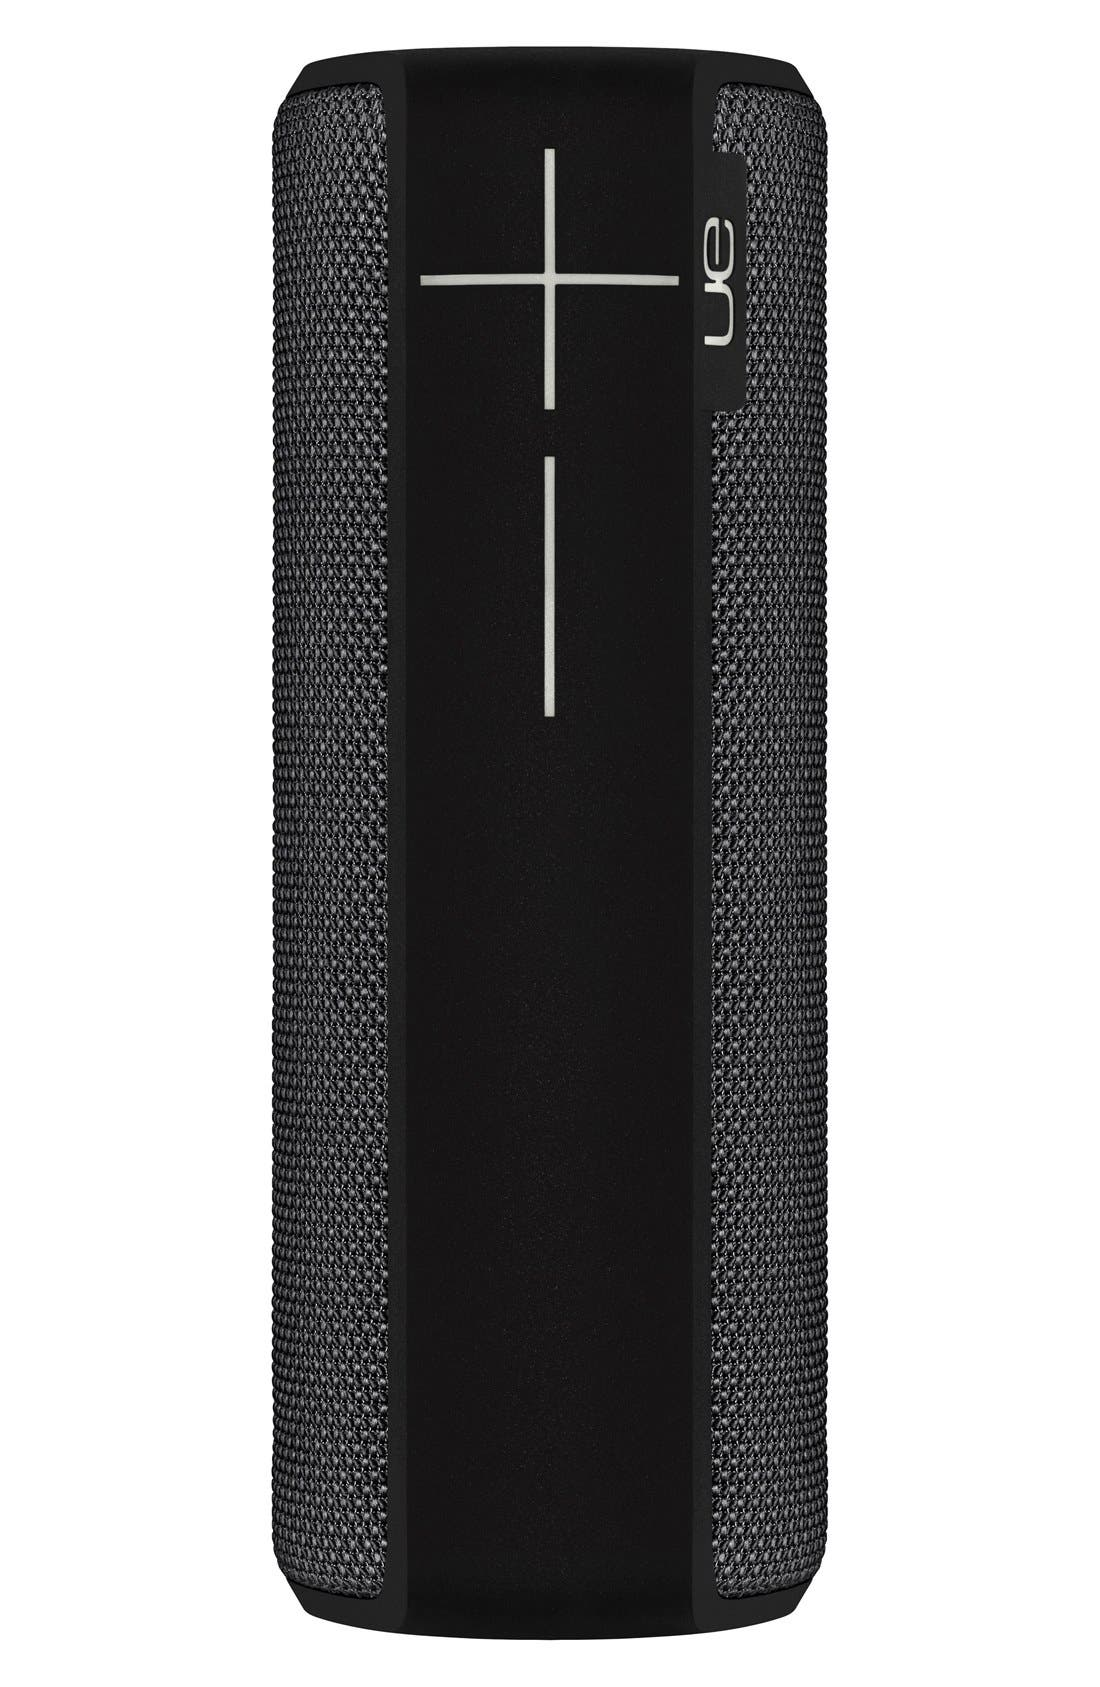 UE Boom 2 Wireless Bluetooth® Speaker